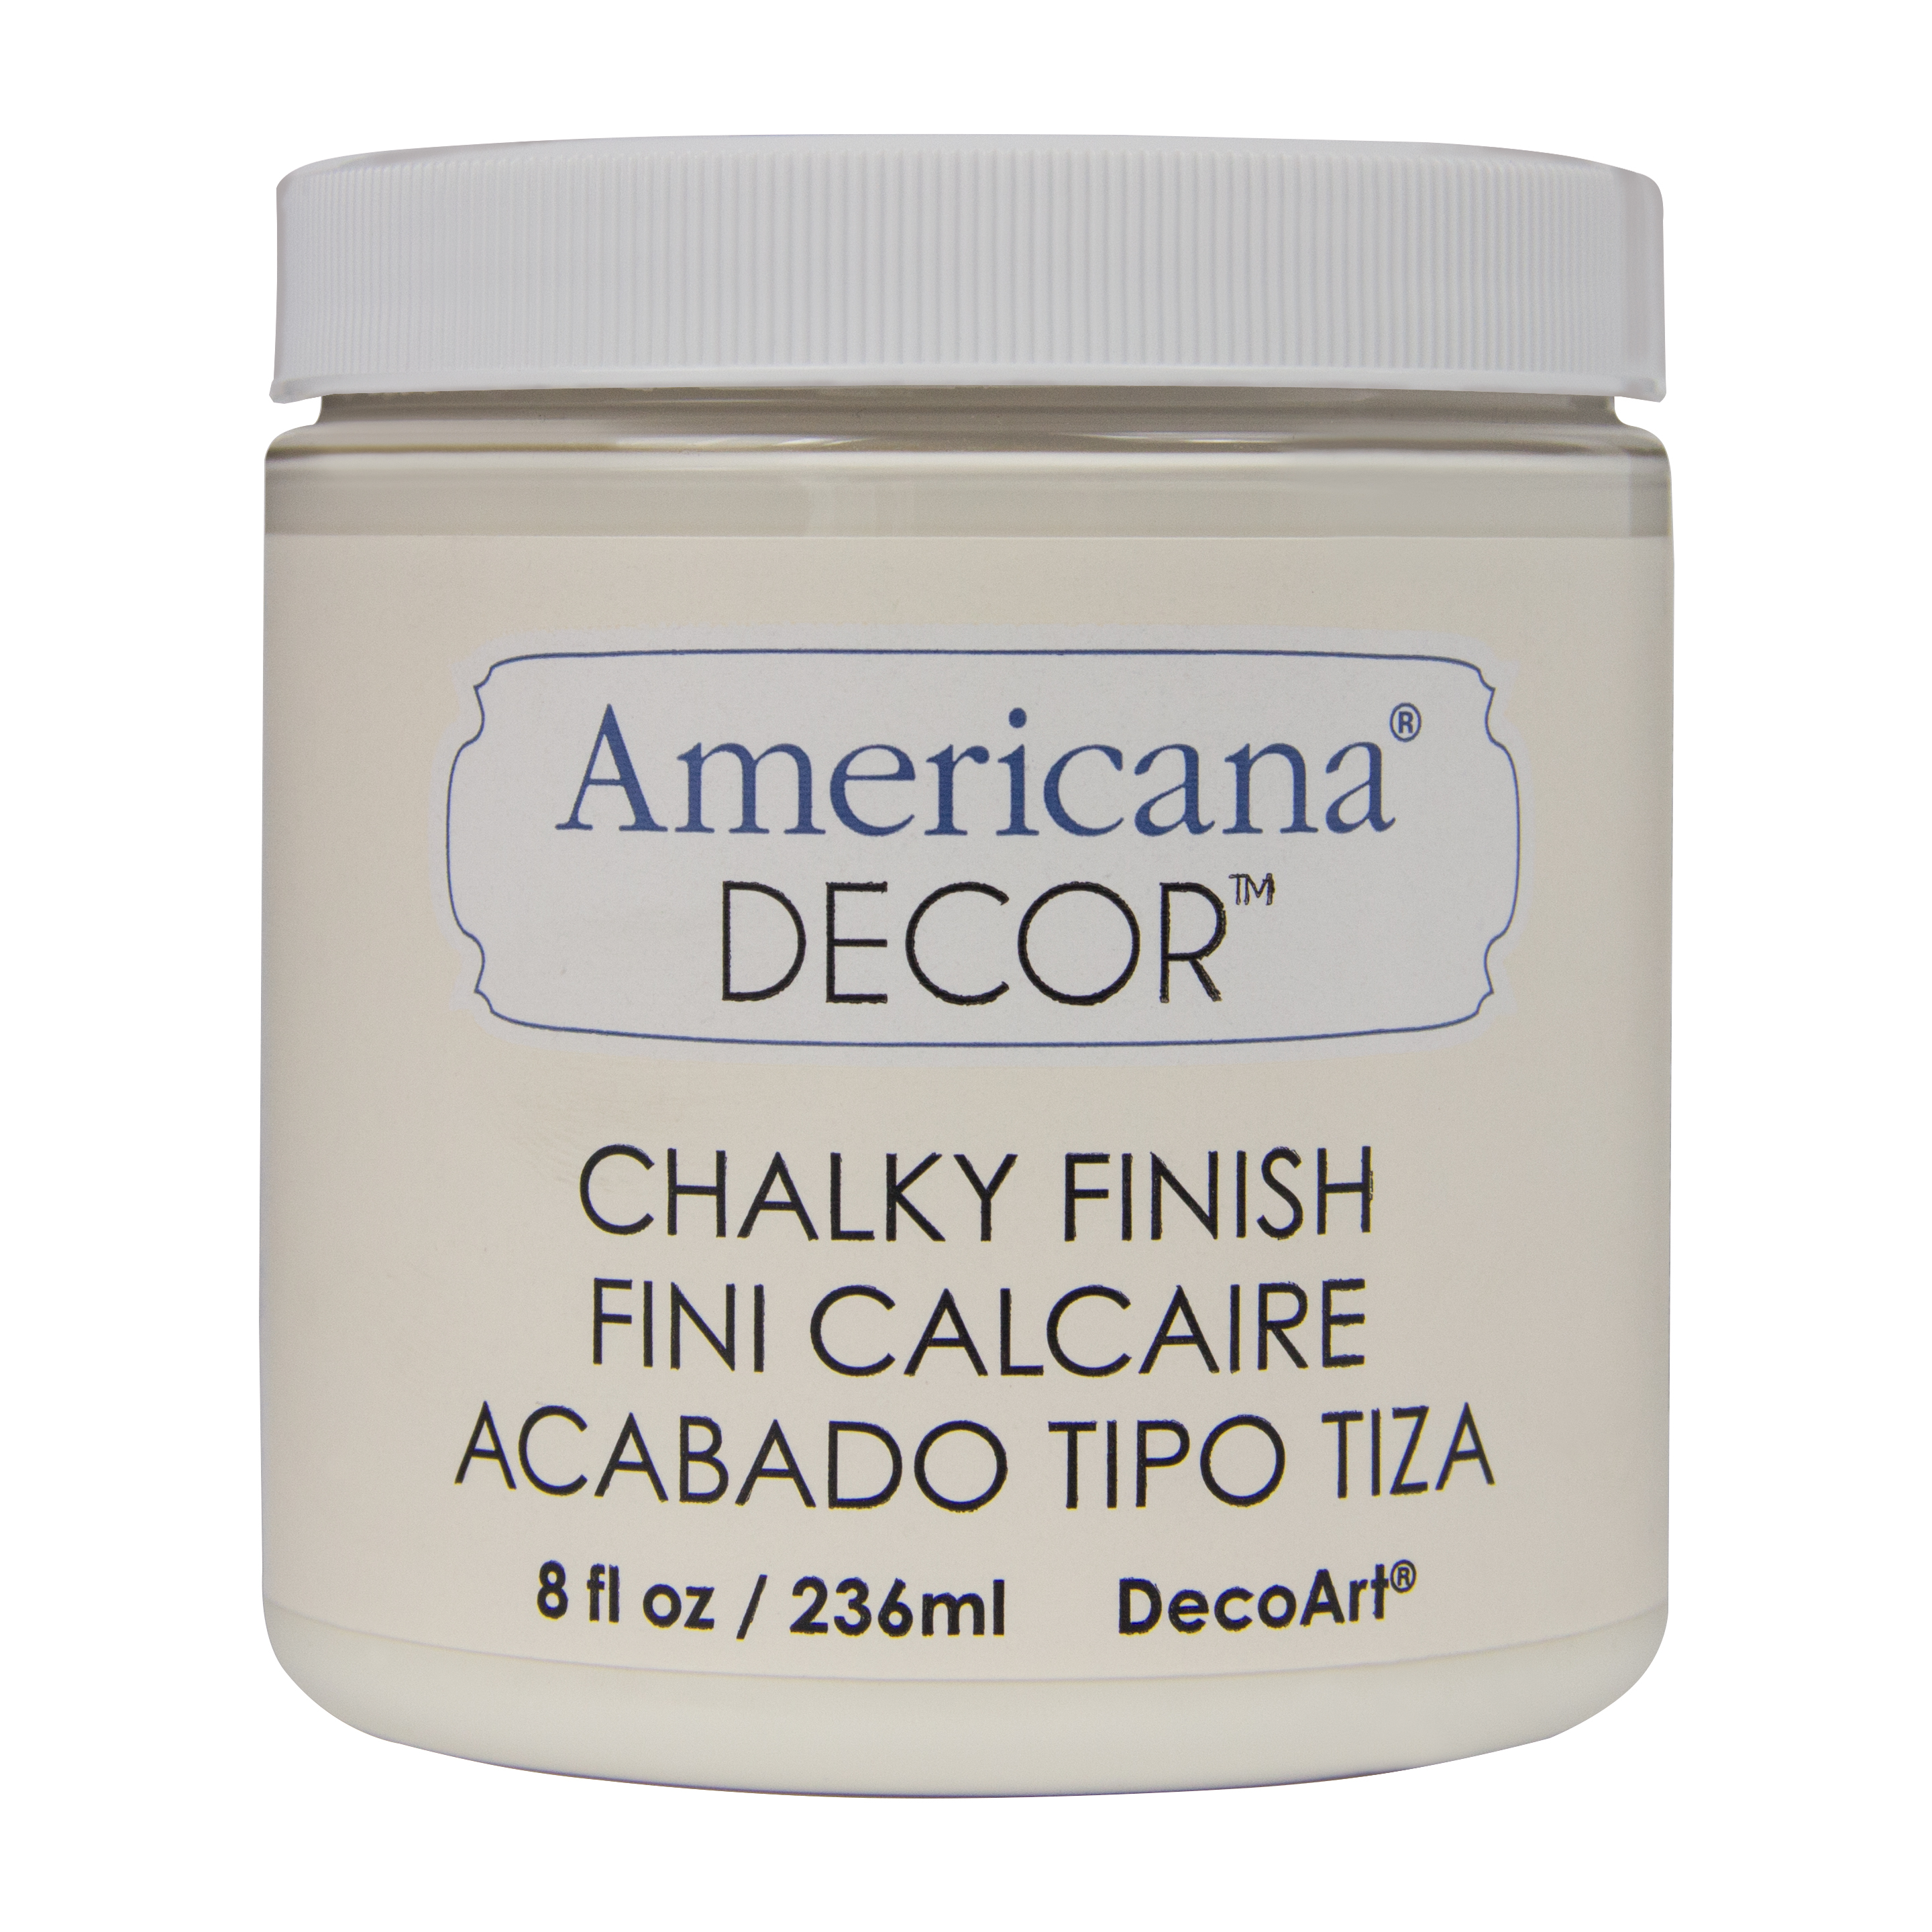 LACE CHALKY FINISH 236ml AMERICANA DECOR